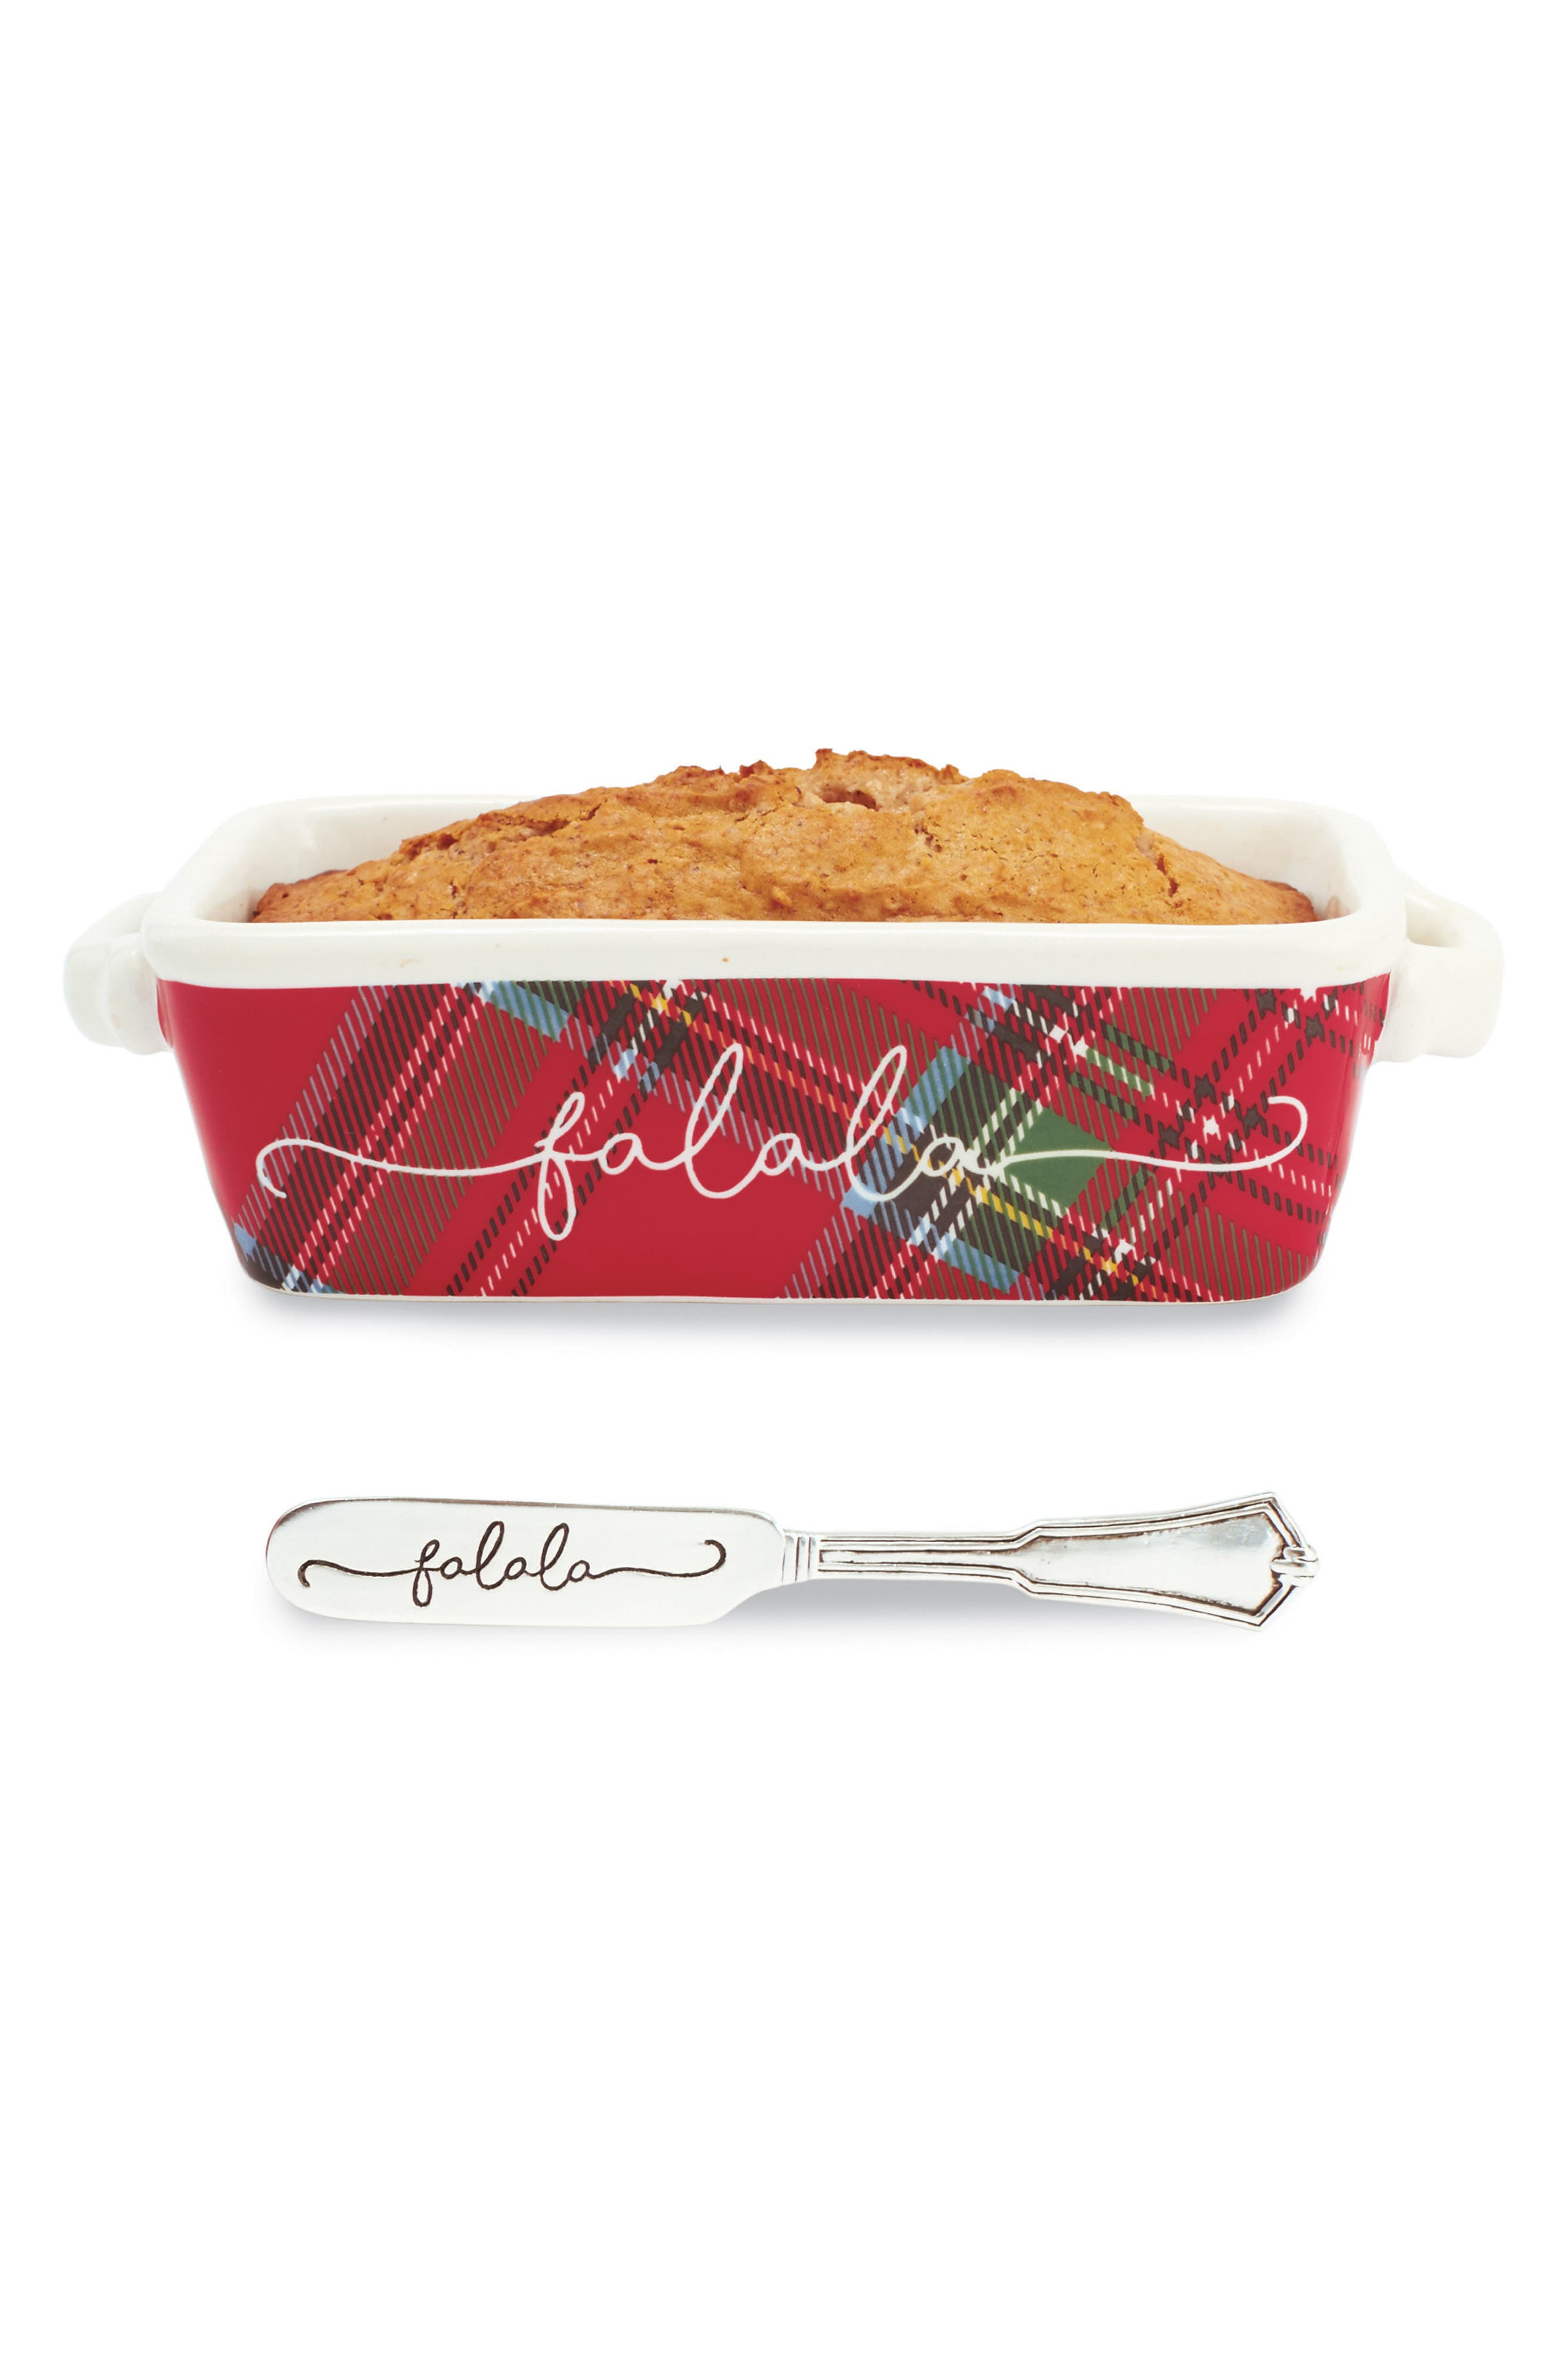 Mud Pie Fa La La Tartan Ceramic Mini Loaf Pan & Spreader